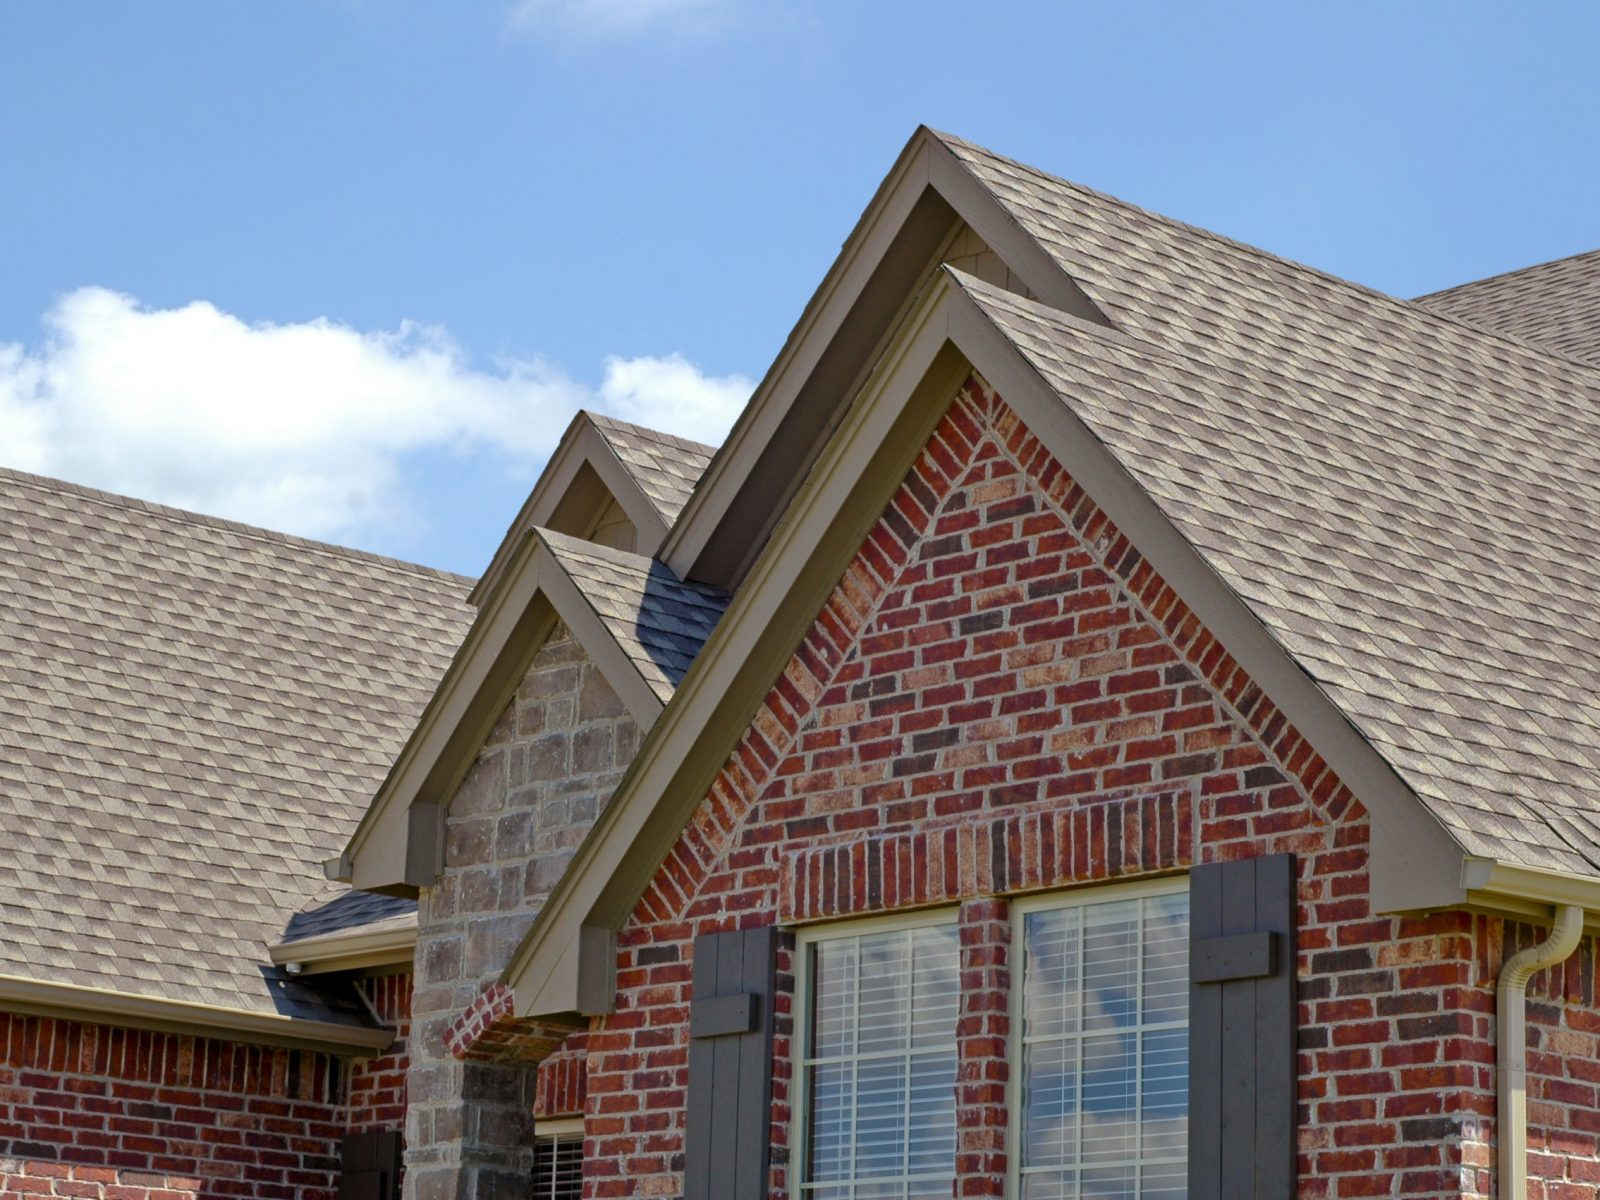 Roof line of a house with gabels